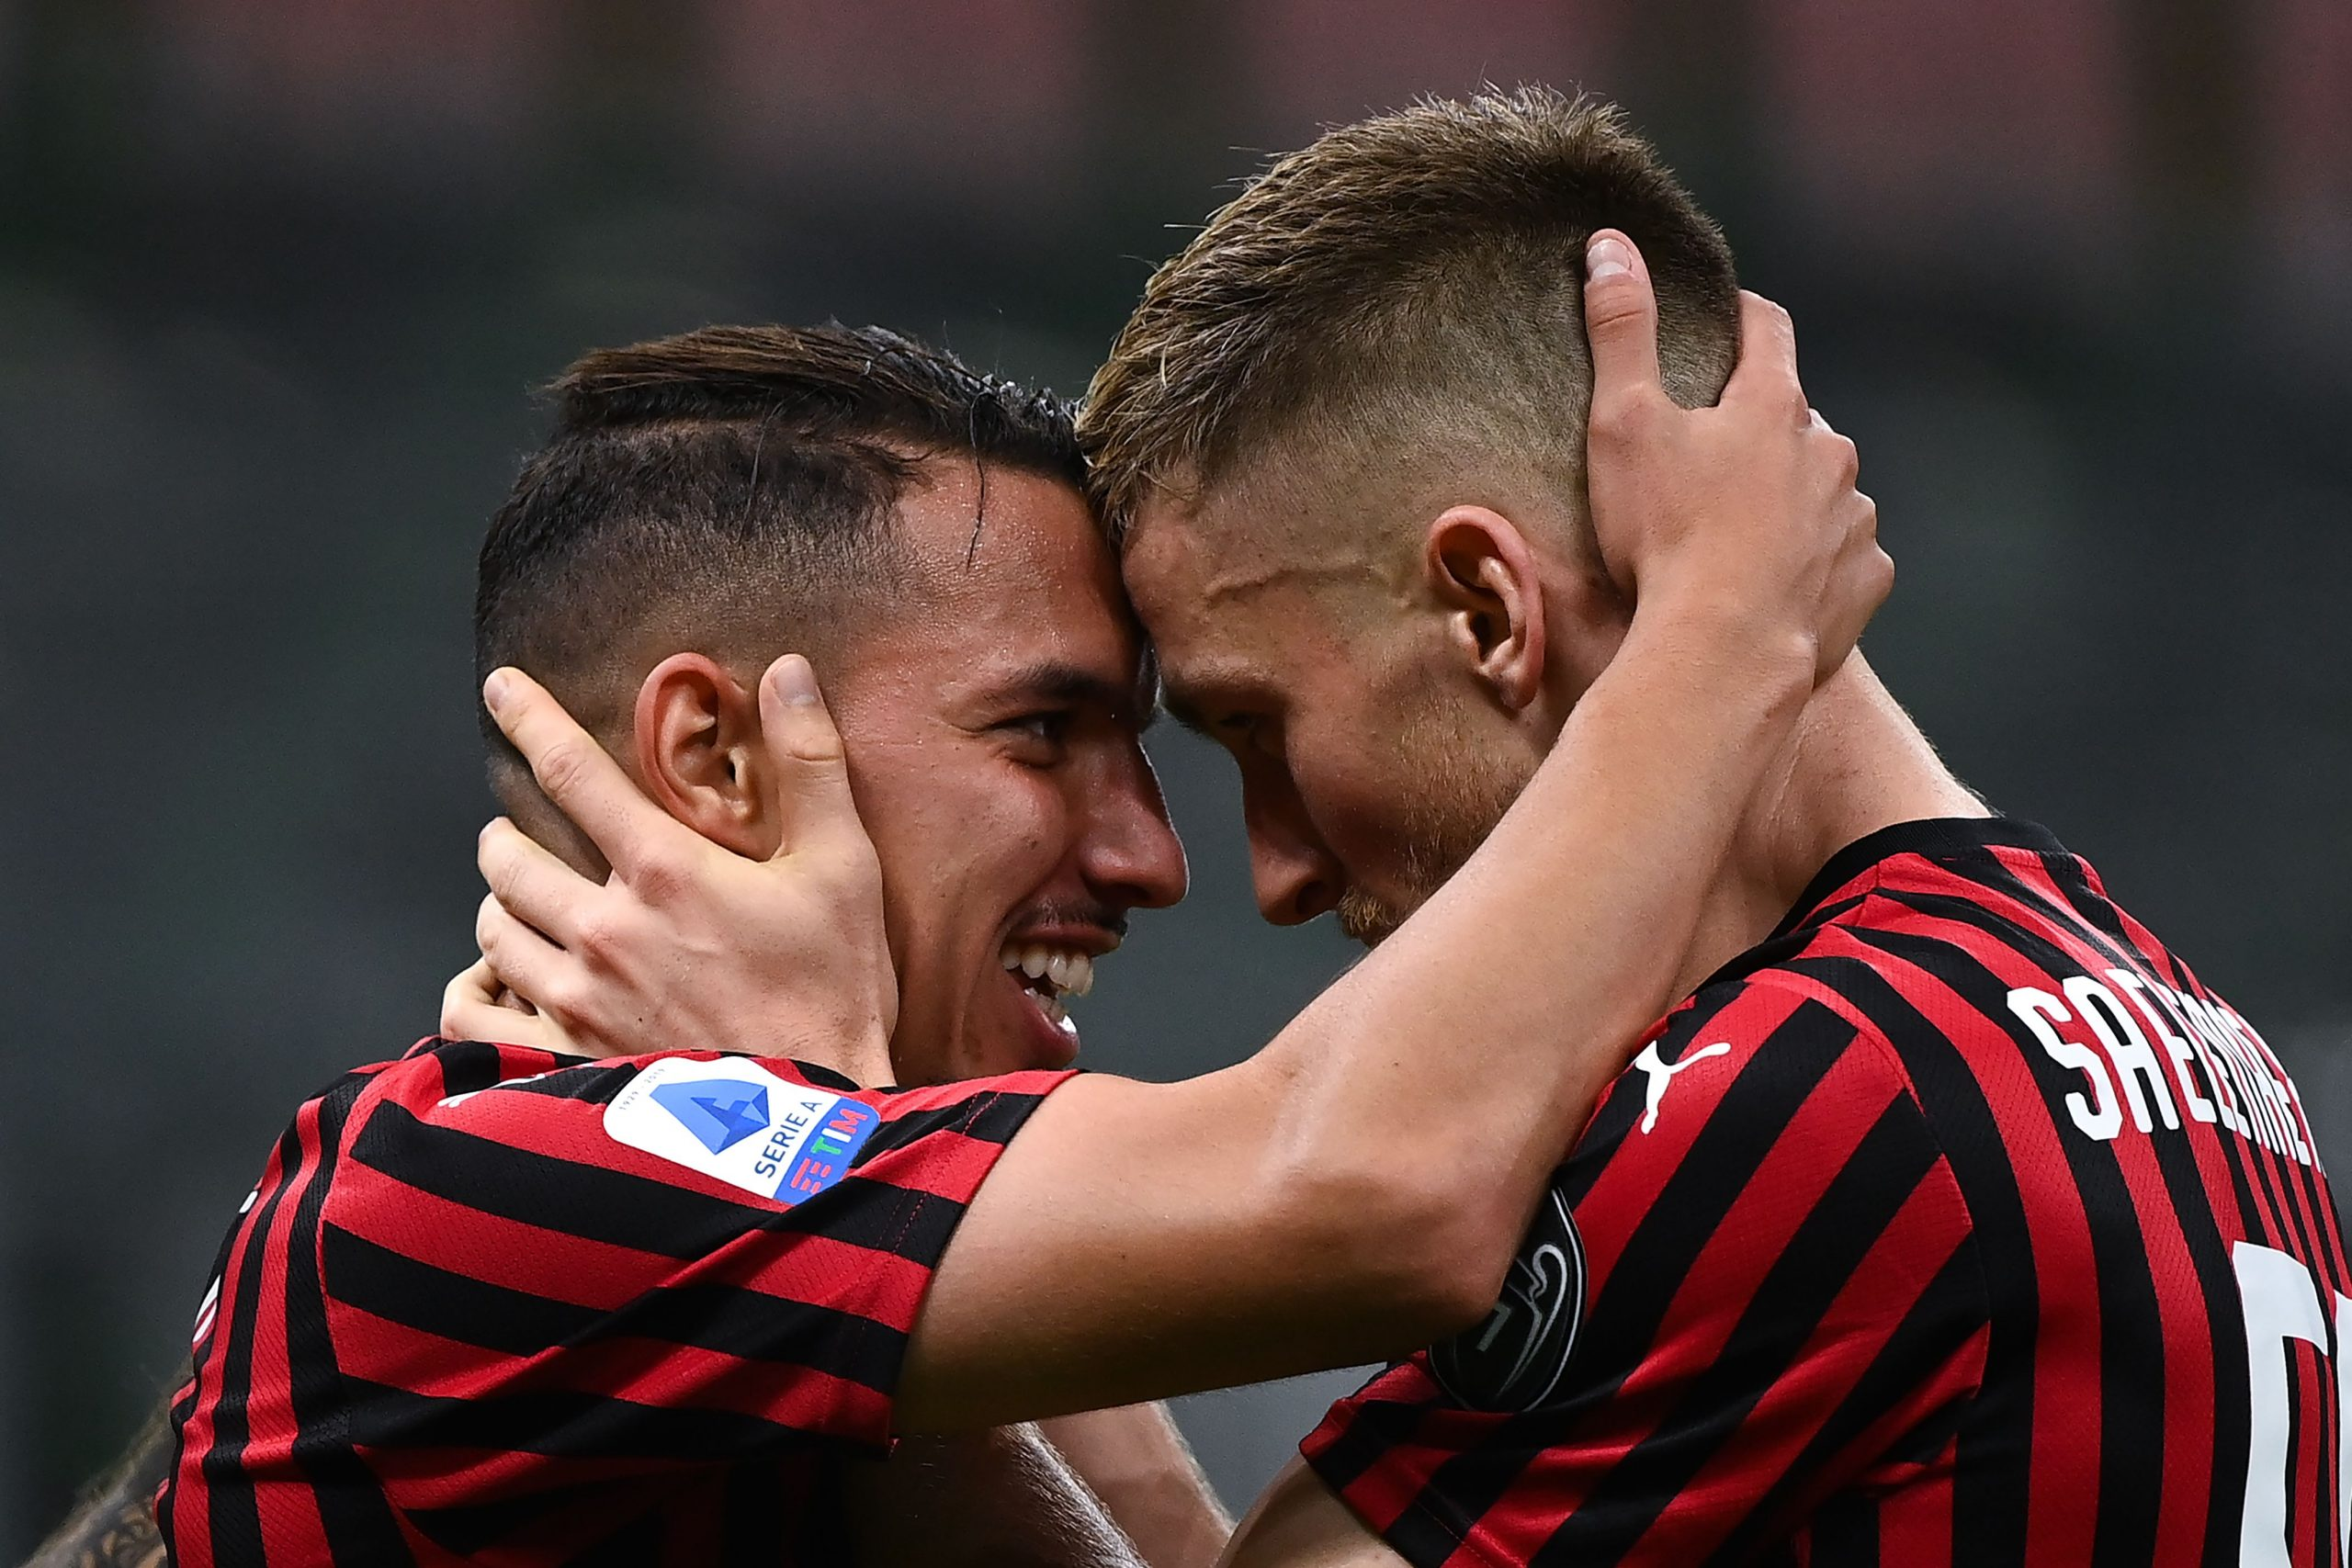 AC Milan's Algerian midfielder Ismael Bennacer (L) celebrates with AC Milan's Belgian midfielder Alexis Saelemaeker after scoring a goal during the Italian Serie A football match AC Milan vs Bologna played behind closed doors on July 15, 2020 at the San Siro Stadium in Milan, as the country eases its lockdown aimed at curbing the spread of the COVID-19 infection, caused by the novel coronavirus. (Photo by MARCO BERTORELLO / AFP)